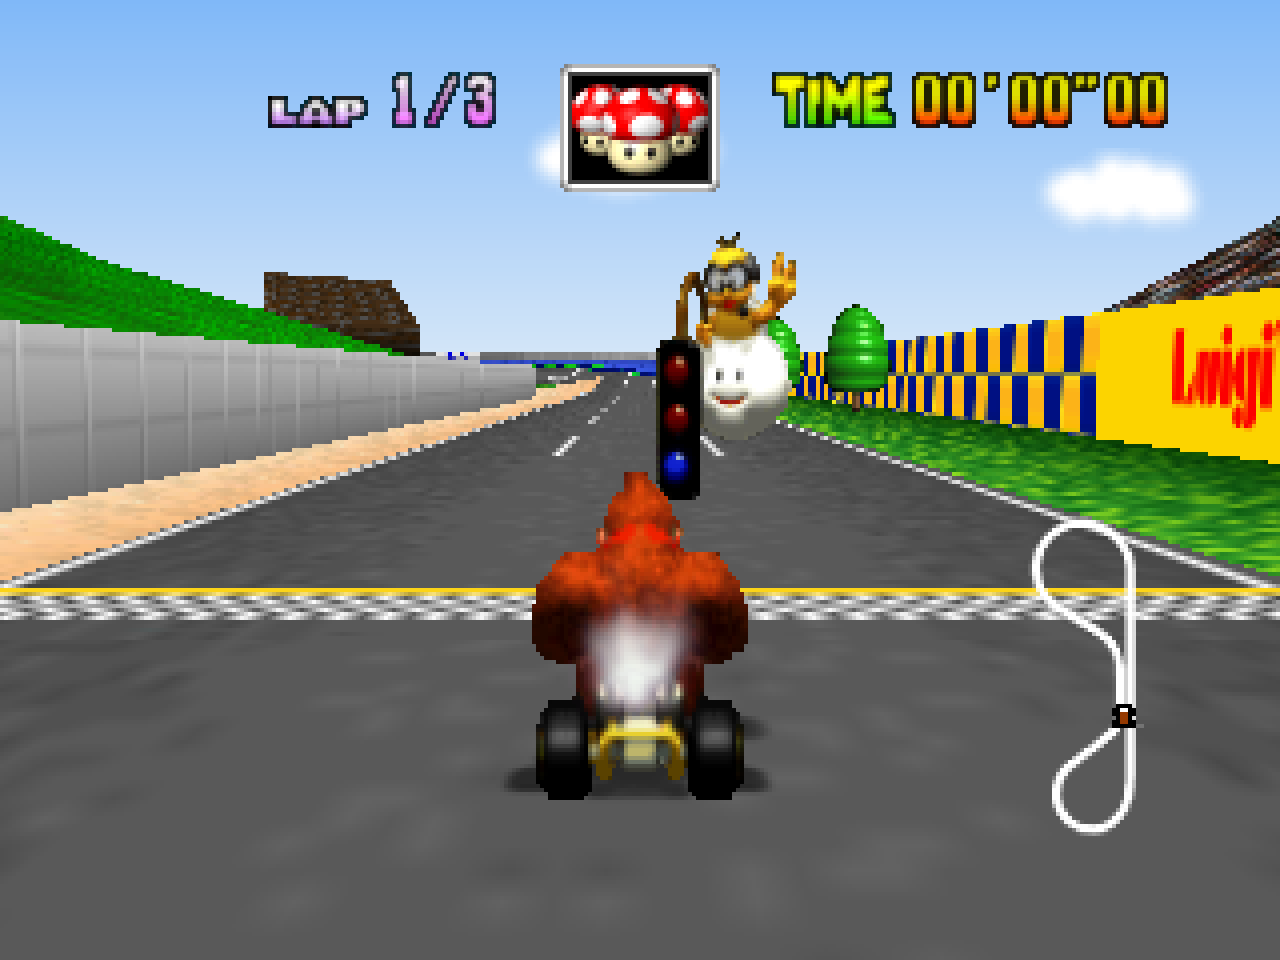 https://s3.eu-west-3.amazonaws.com/games.anthony-dessalles.com/Mario Kart 64 N64 2020 - Screenshots/Mario Kart 64-201118-215825.png